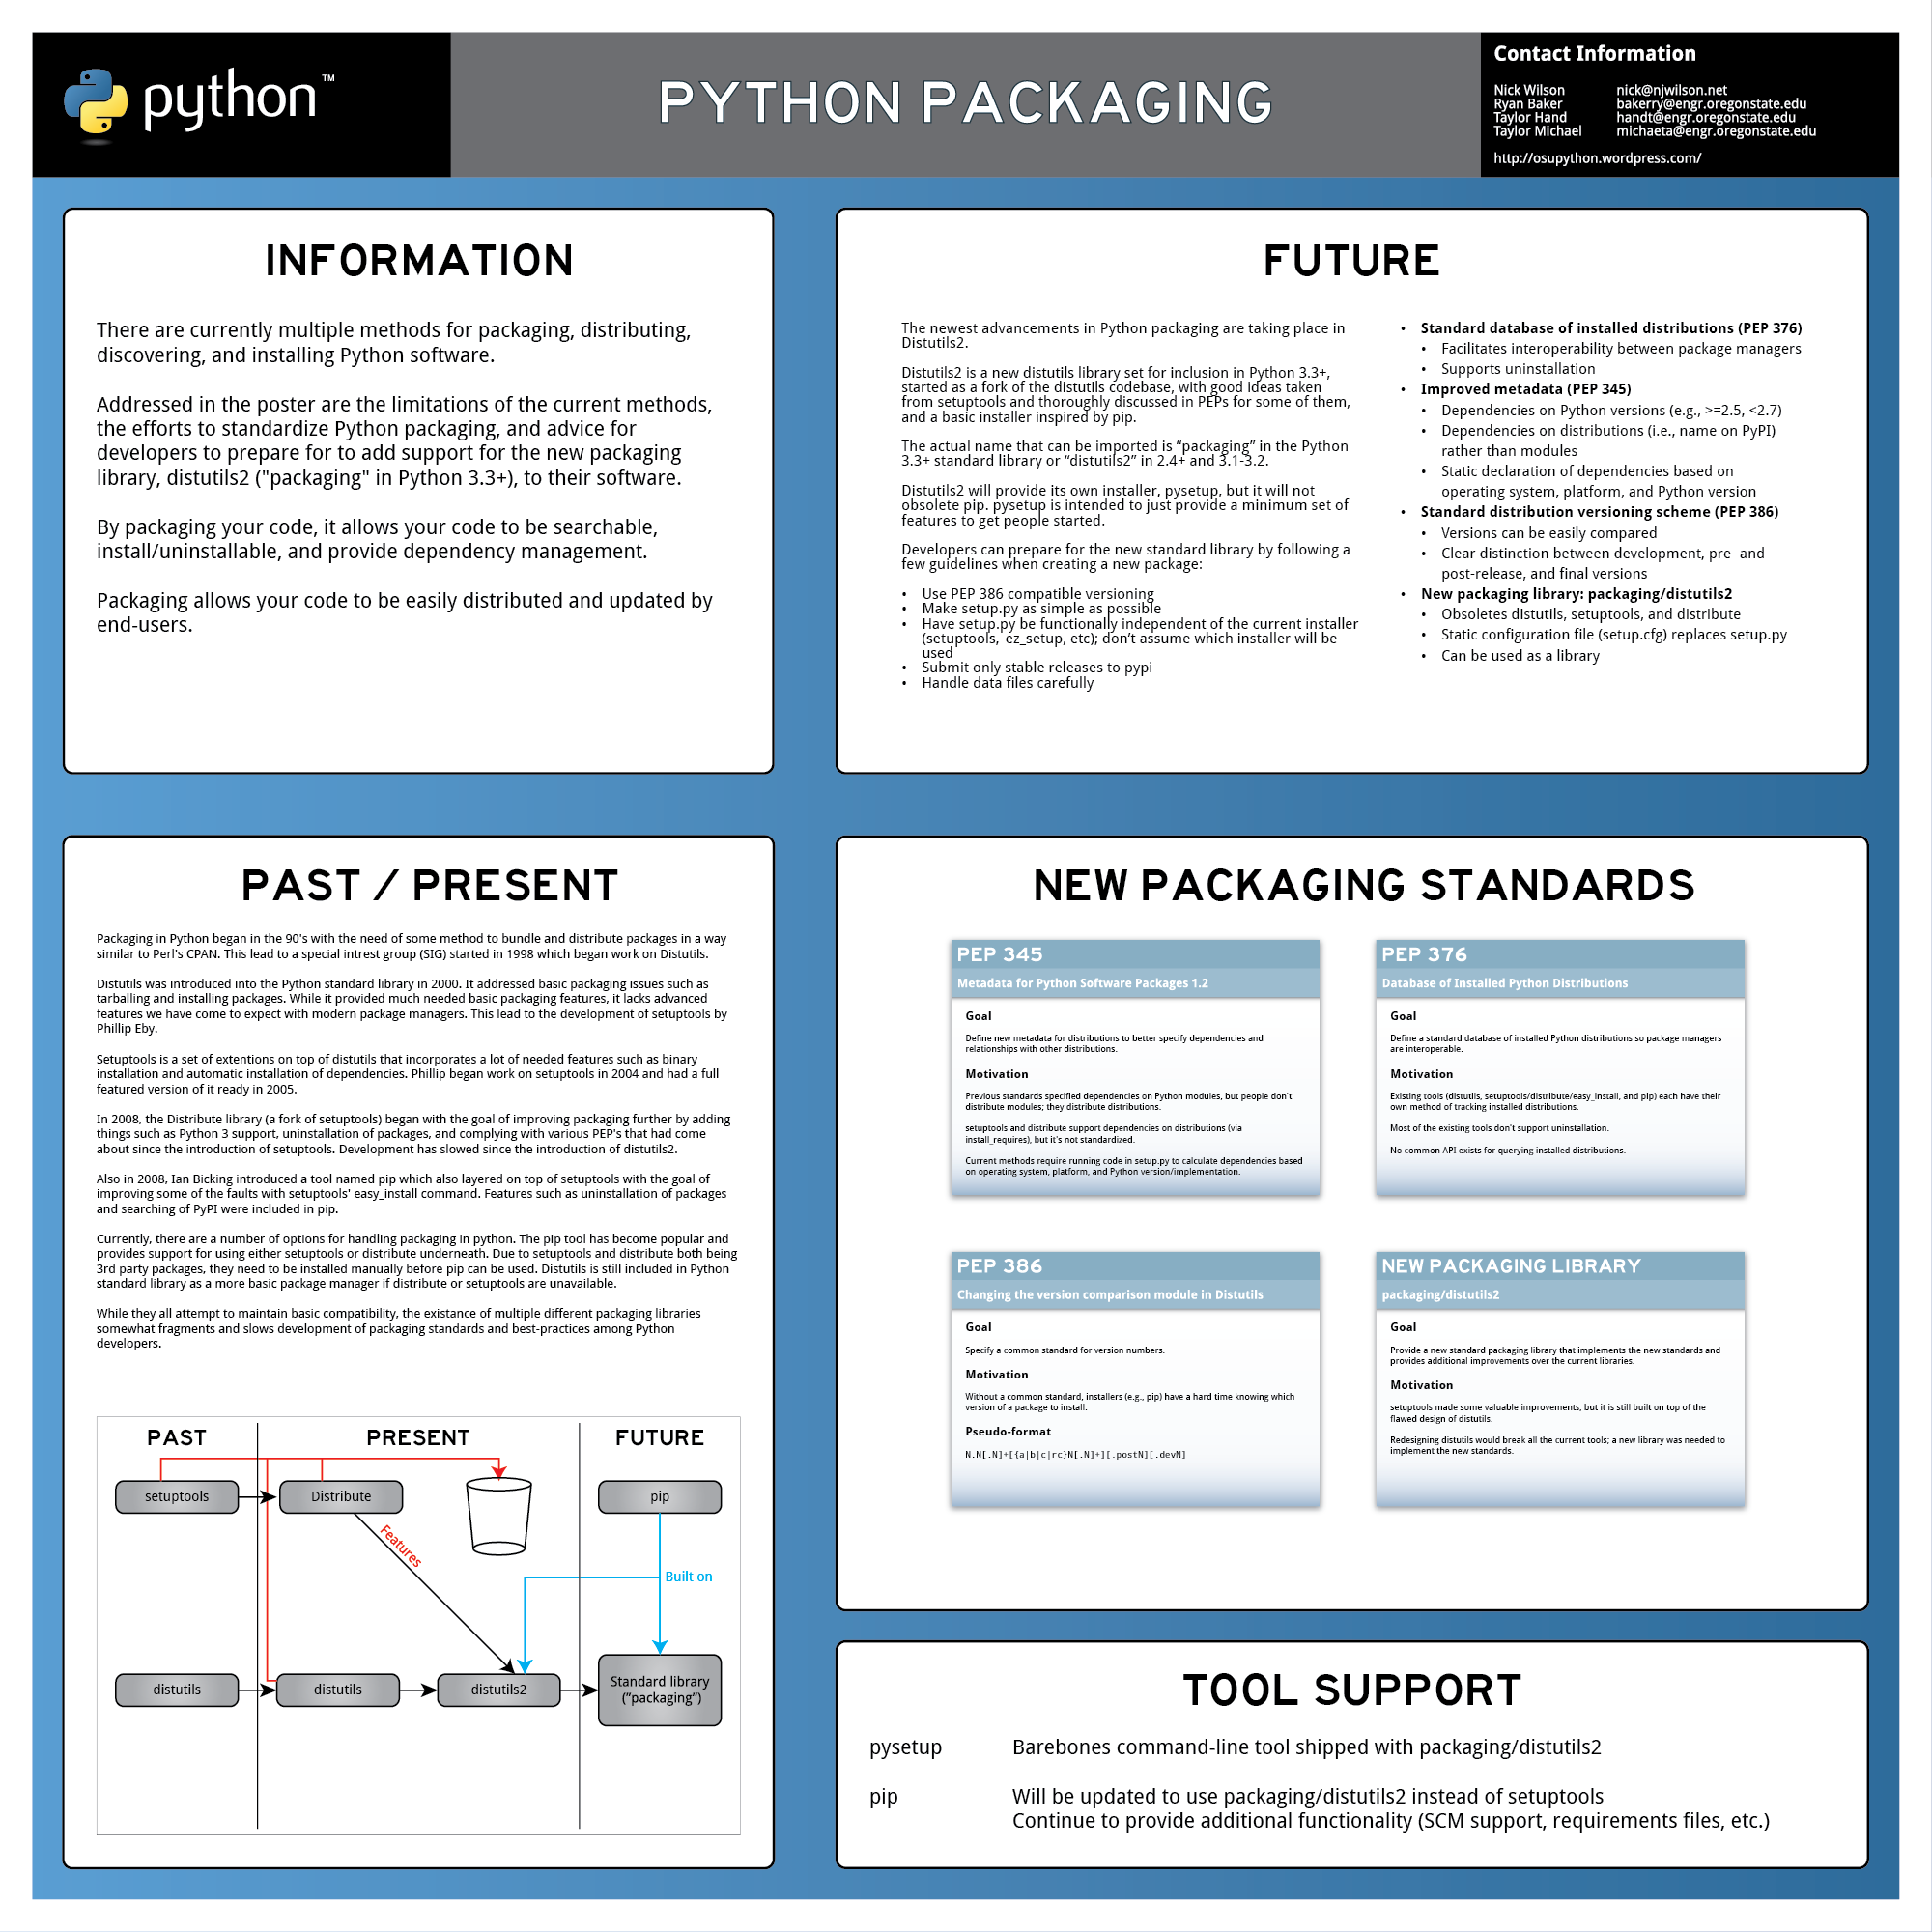 https://github.com/njwilson/pycon-2012-packaging-poster/raw/master/poster_small.png